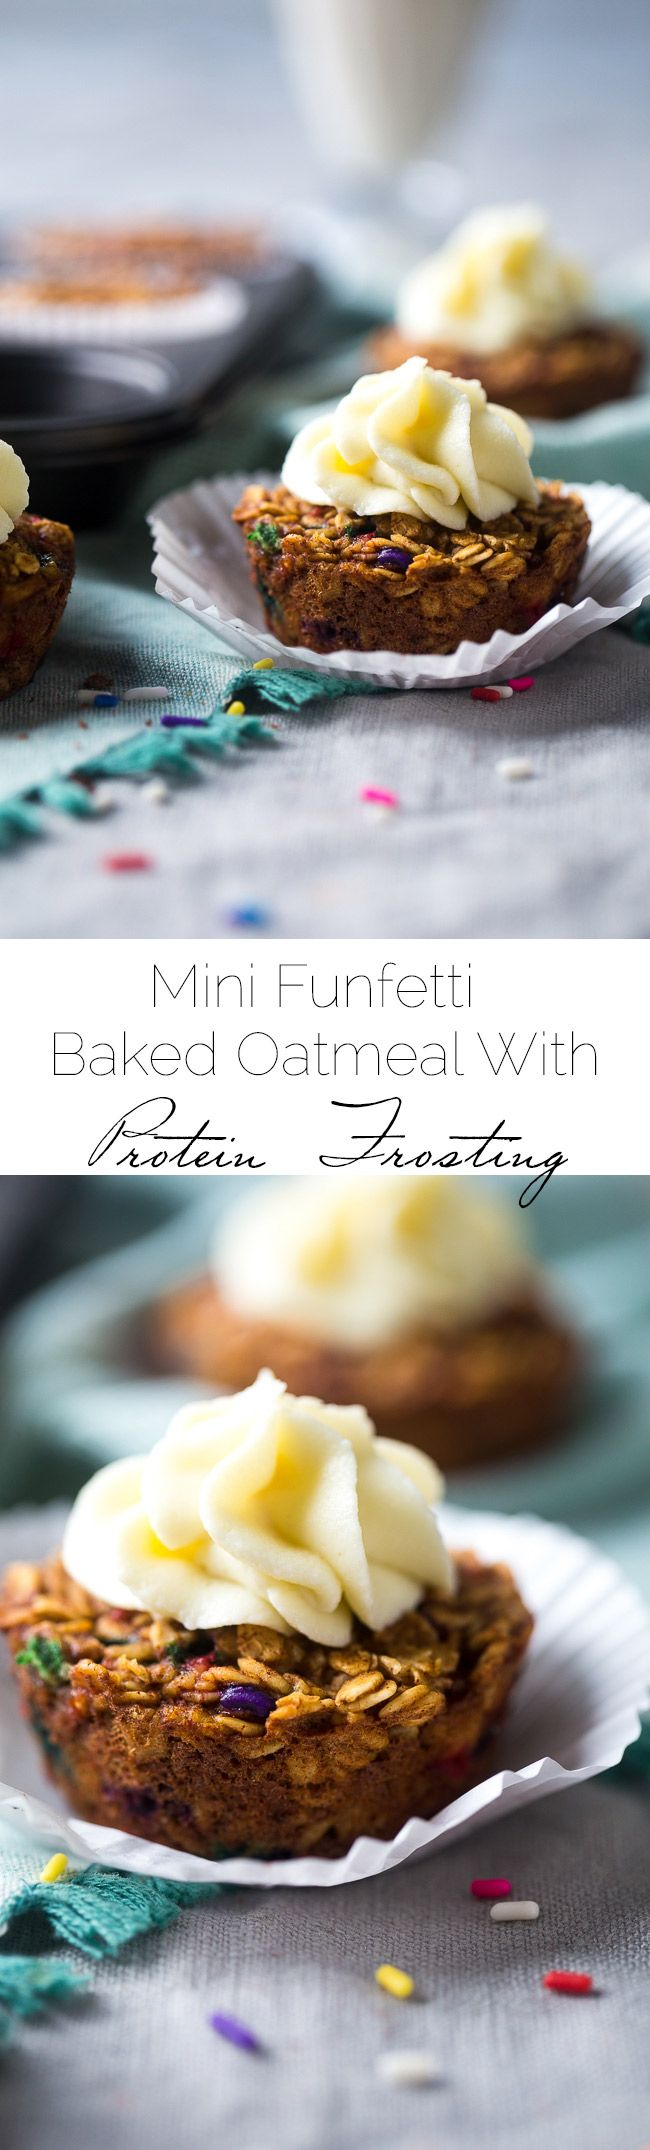 Mini Funfetti Baked Oatmeal Cupcakes - Made with Greek yogurt and protein powder for a healthy, portable breakfast that is oil and sugar free! Great for kids! | Foodfaithfitness.com | @FoodFaithFit